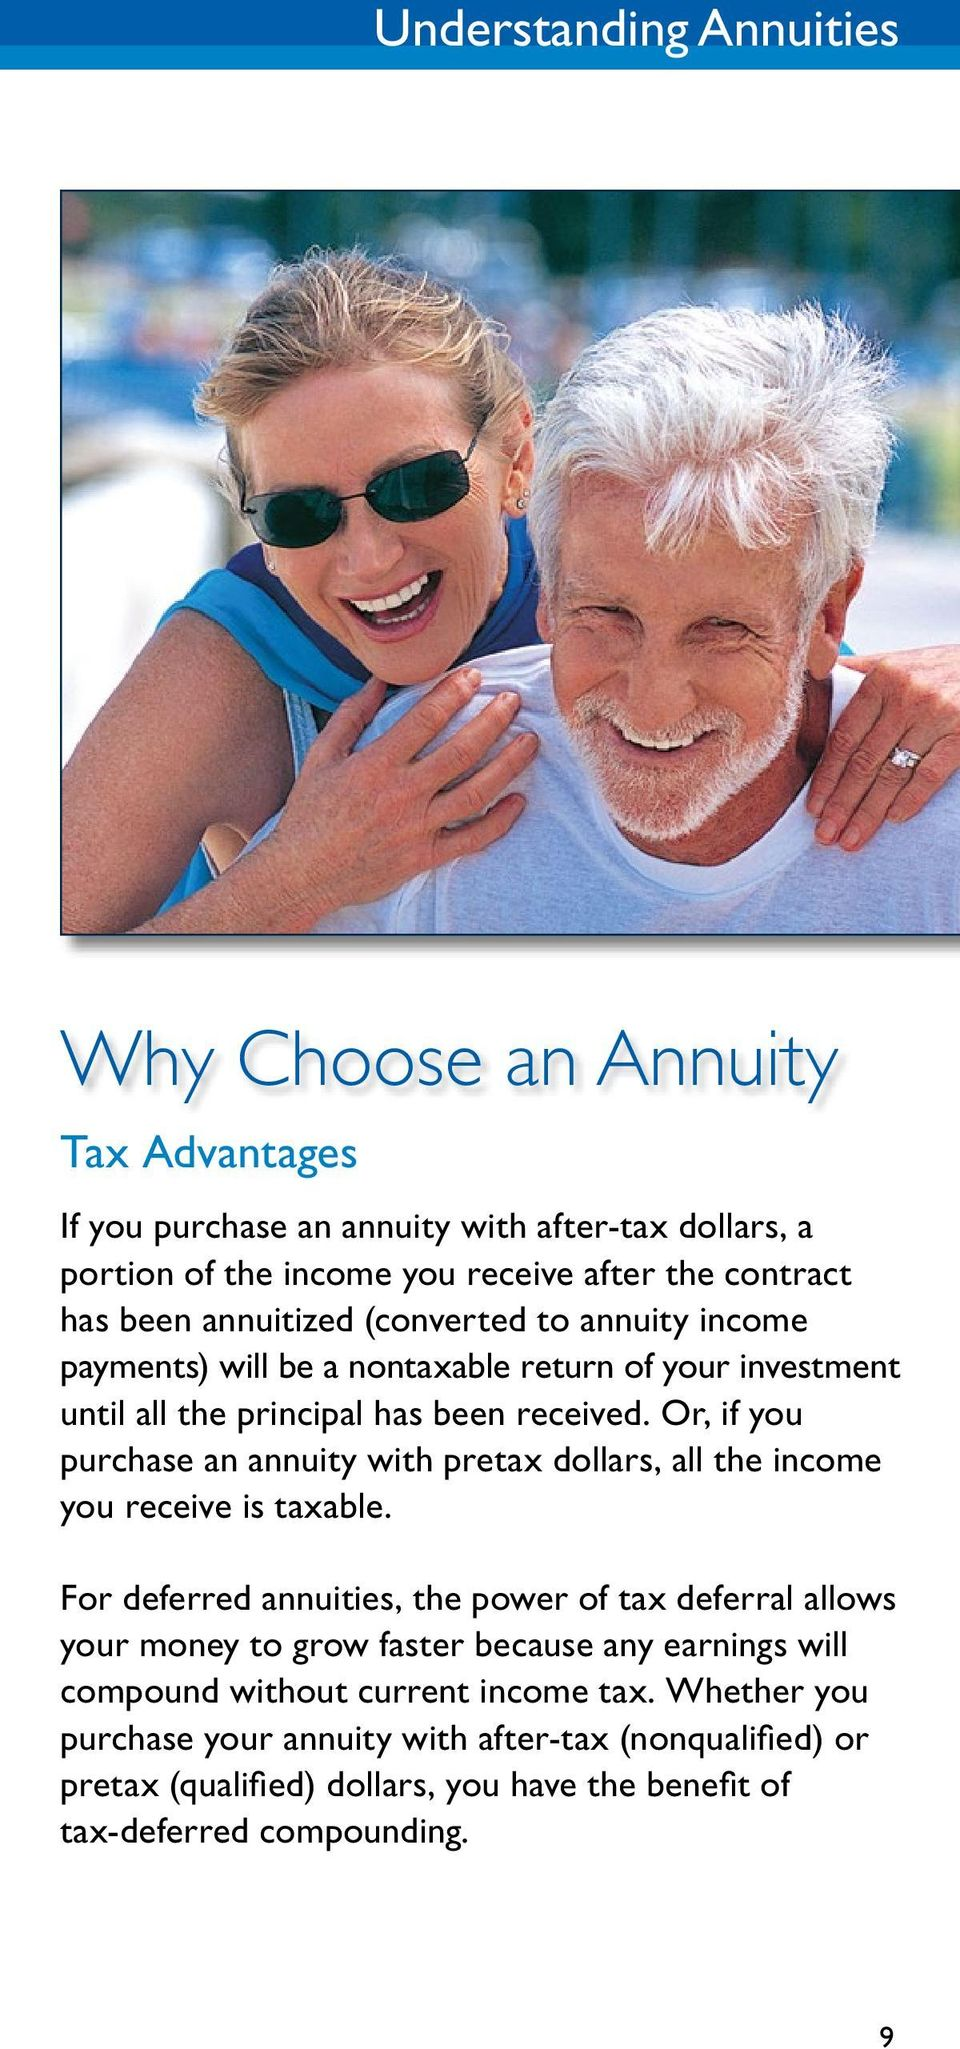 Or, if you purchase an annuity with pretax dollars, all the income you receive is taxable.